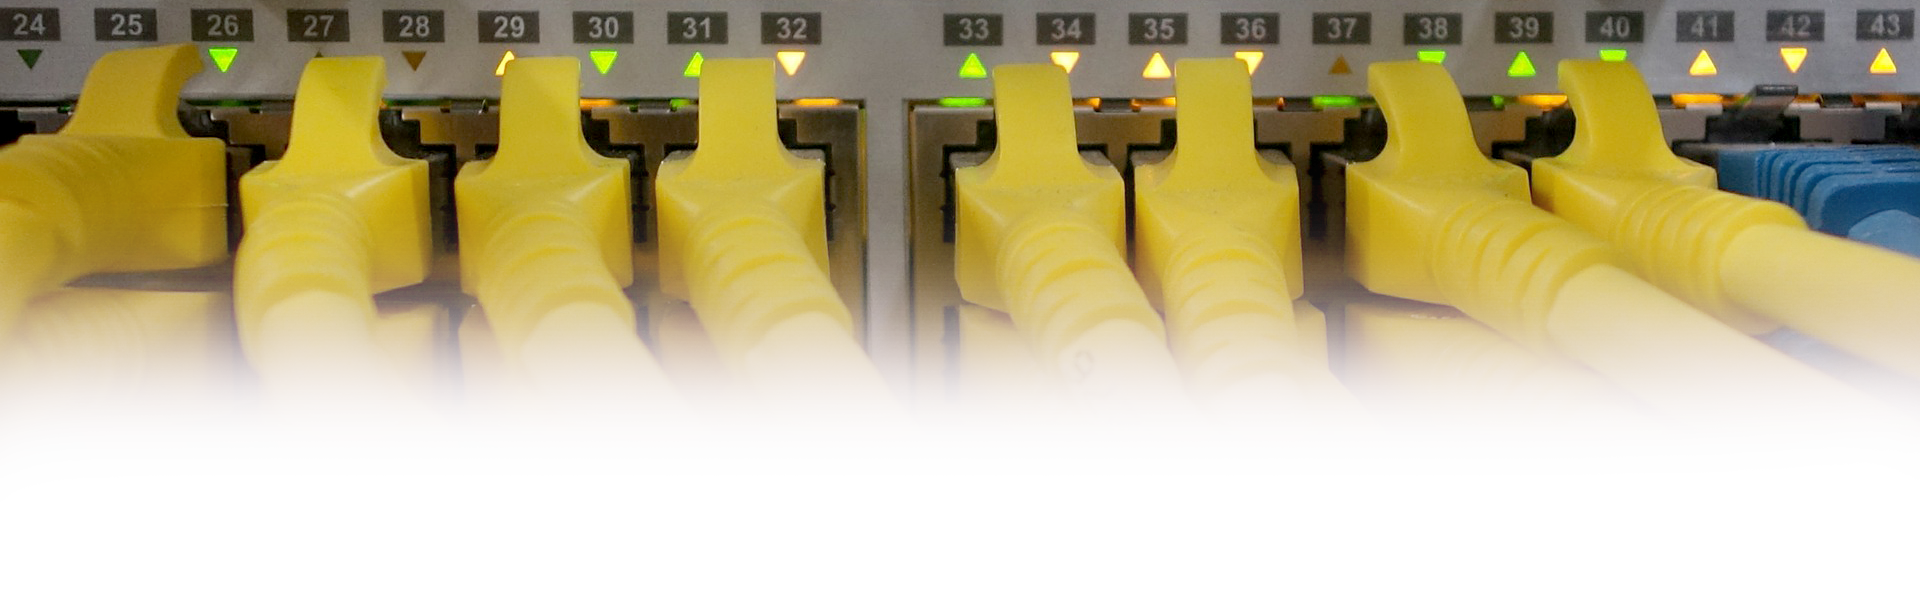 Structured Cabling Novo Communications Contact Us To Learn More About Our Wiring Services From Conception Completion We Offer Comprehensive Infrastructure Solutions For Your Needs Project Teams Can Design Scalable Systems Meet